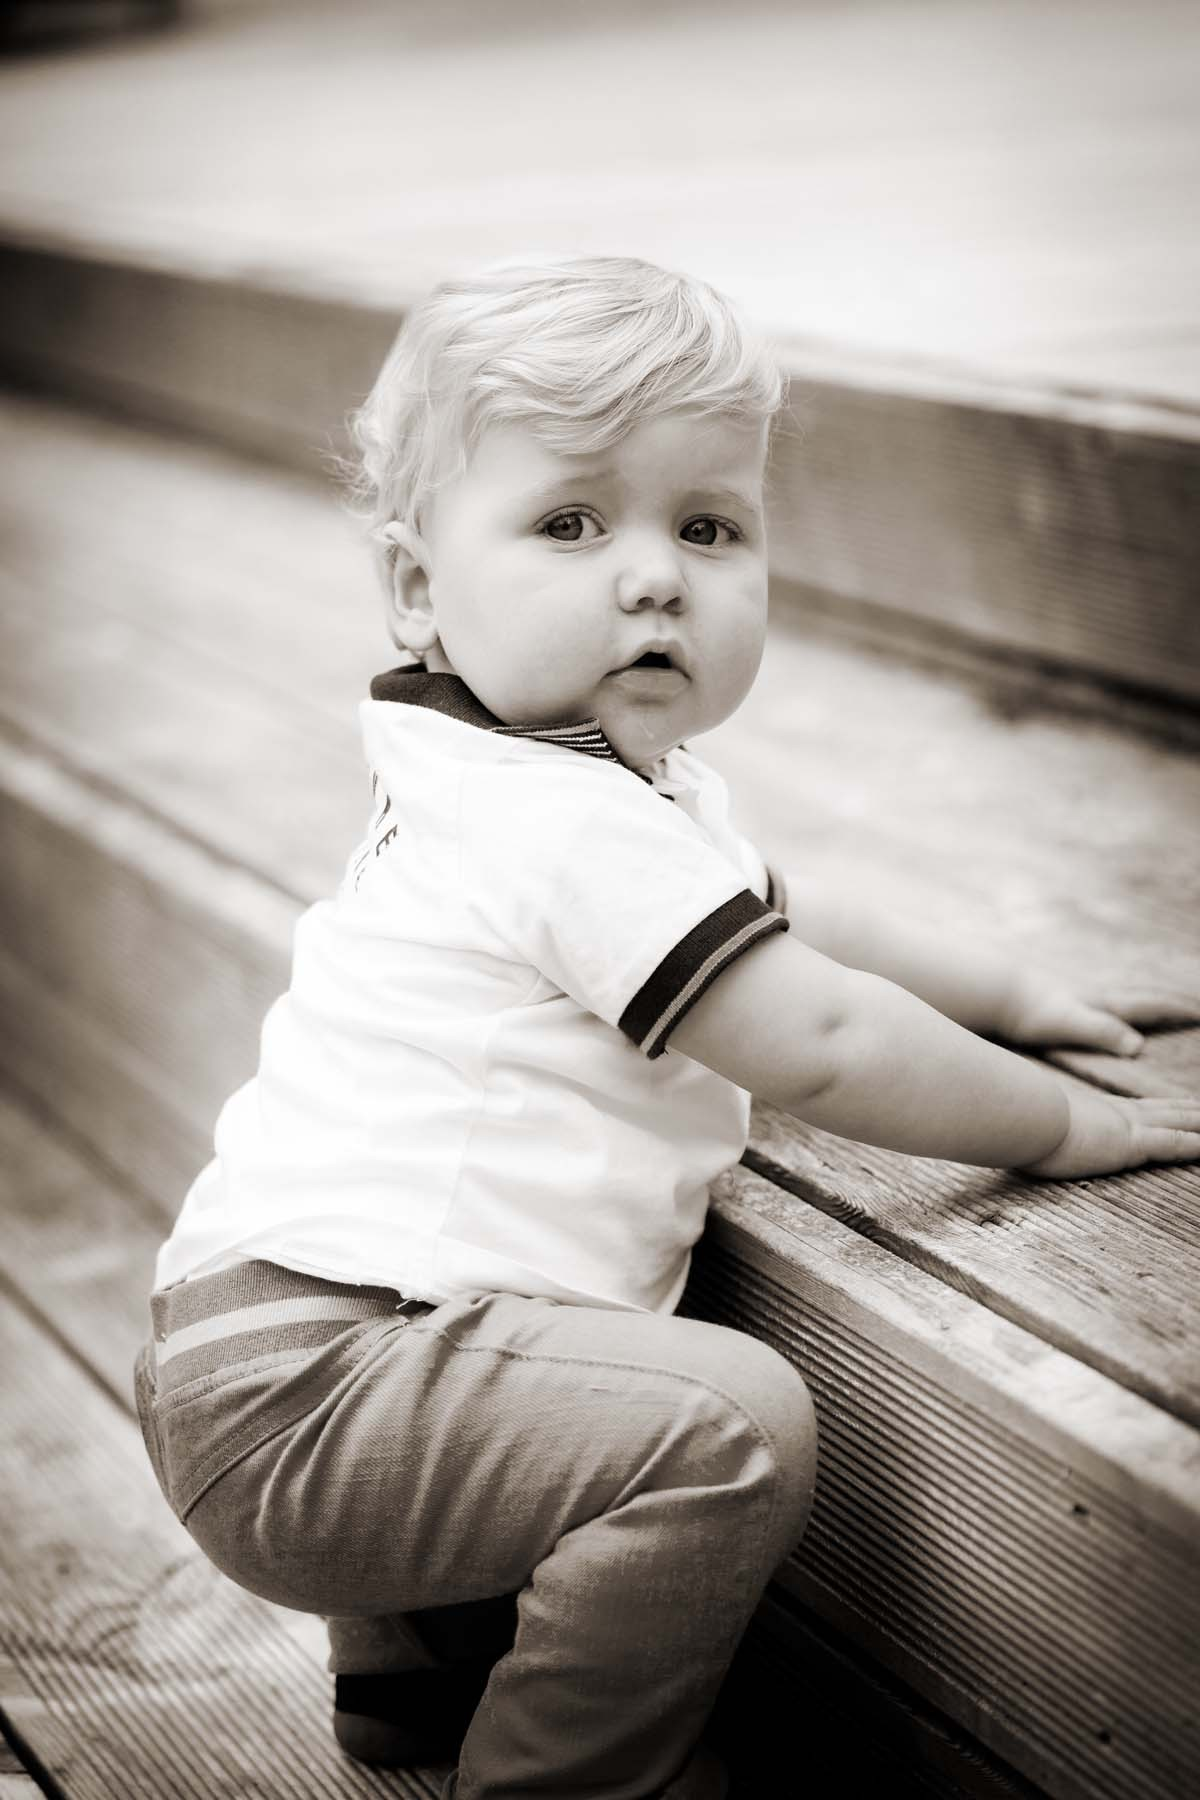 Child Photographer in Sussex & Surrey, East Grinstead & Crawley (14)